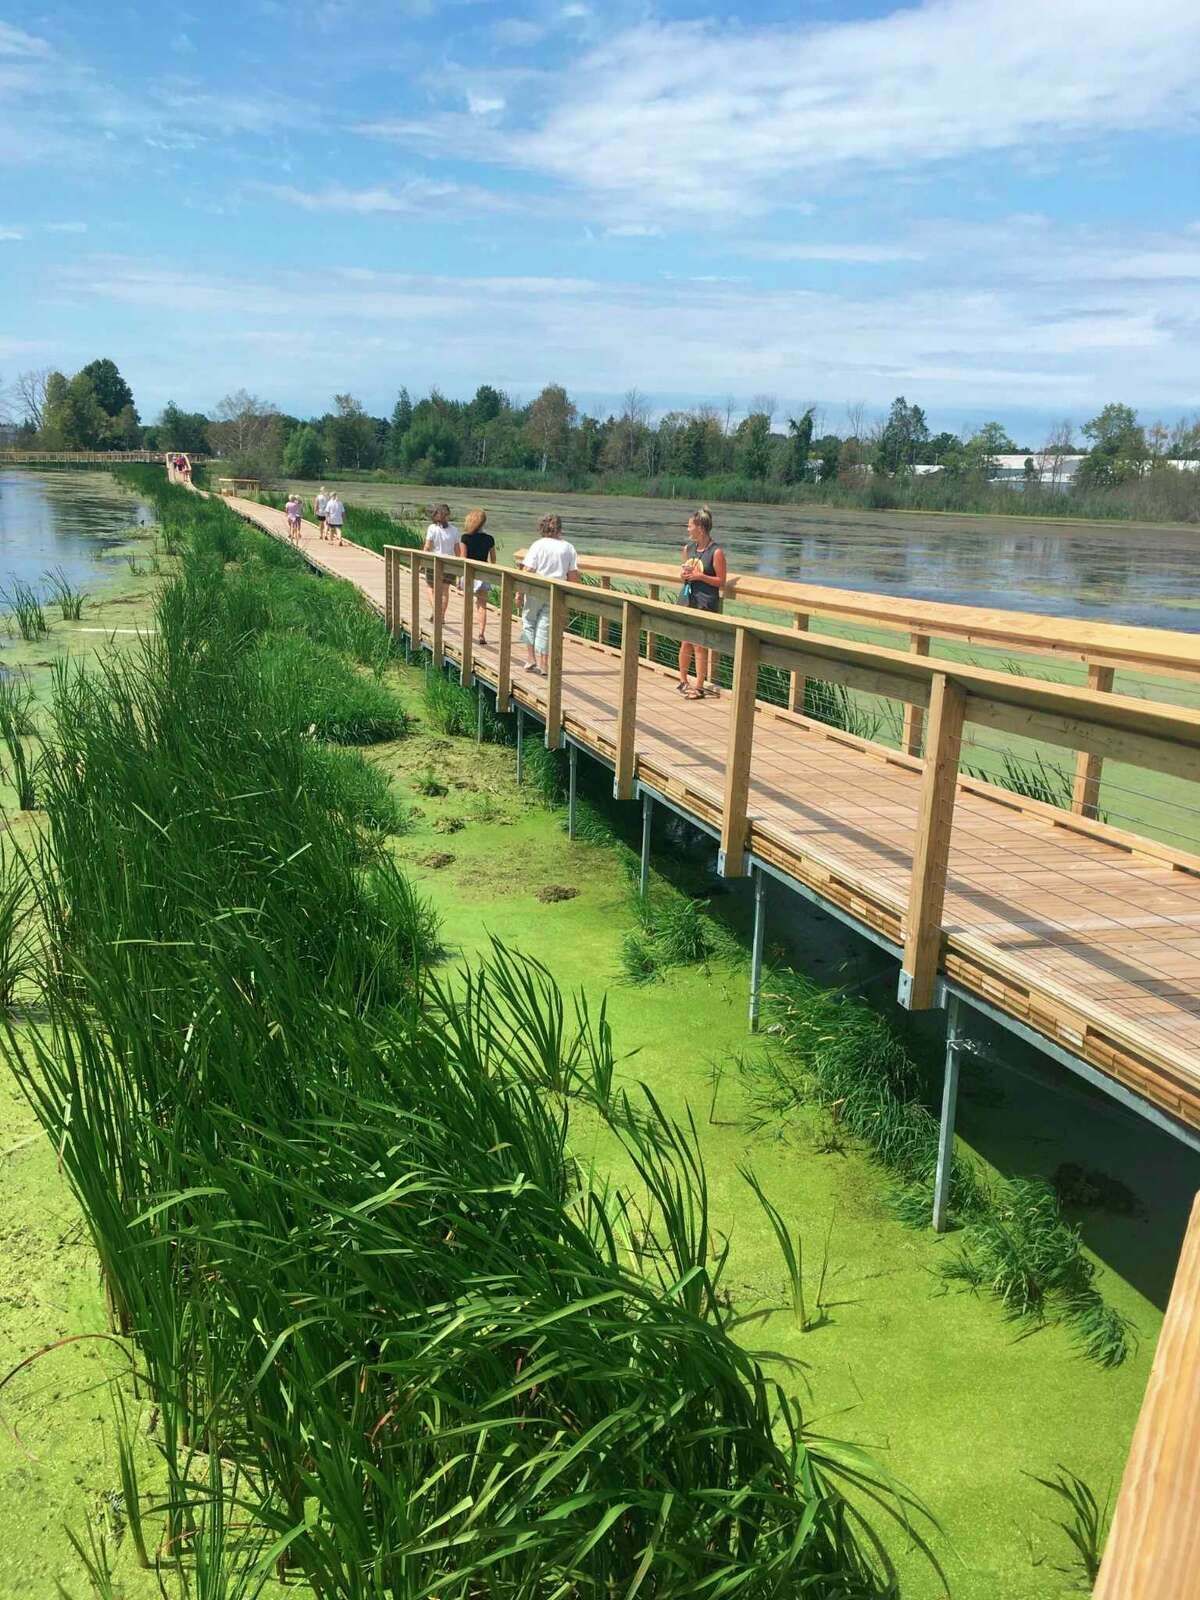 The nearly mile-long boardwalk at Arcadia Marsh built by the Grand Traverse Regional Land Conservancy. (Courtesy photo/Nate Richardson)